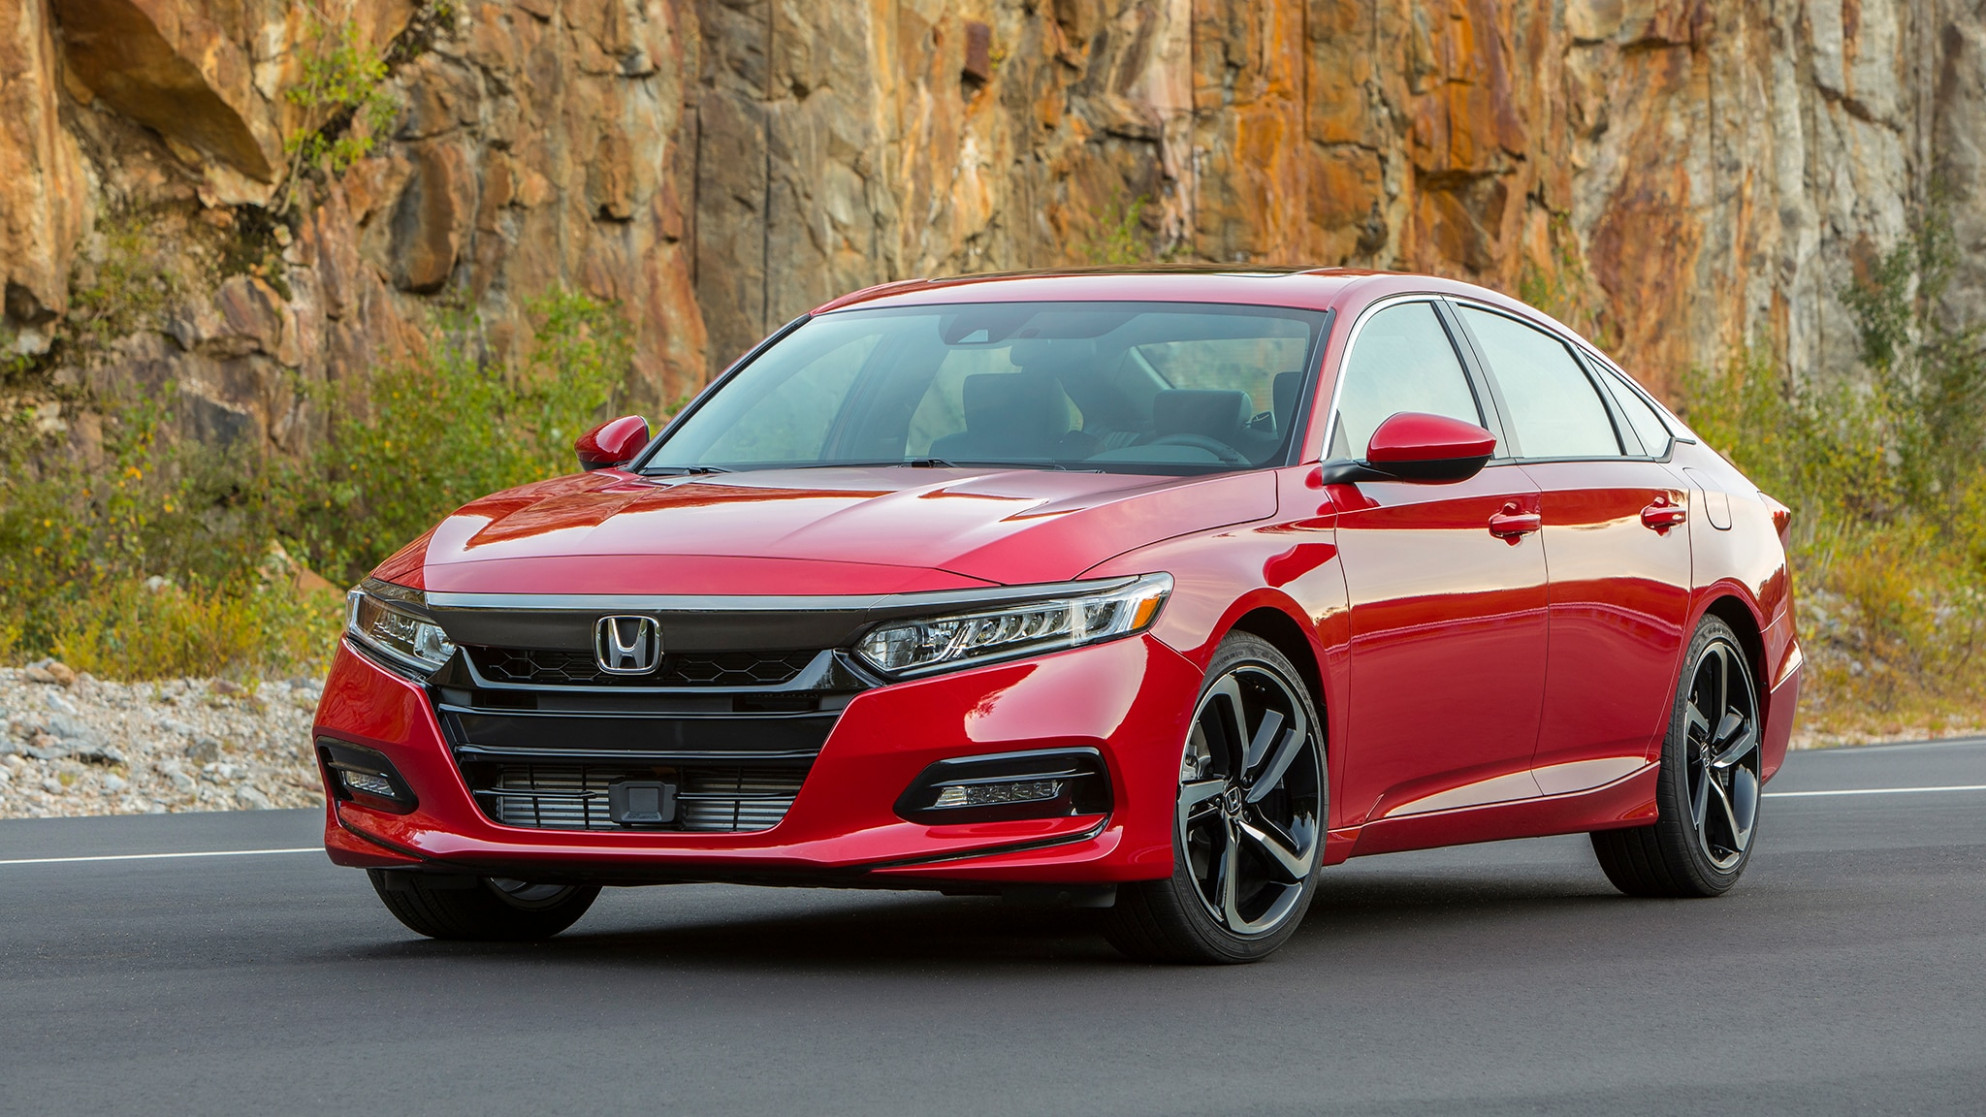 6 Honda Accord Engine Options: 6.6T, 6.6T, or Hybrid—Which ..